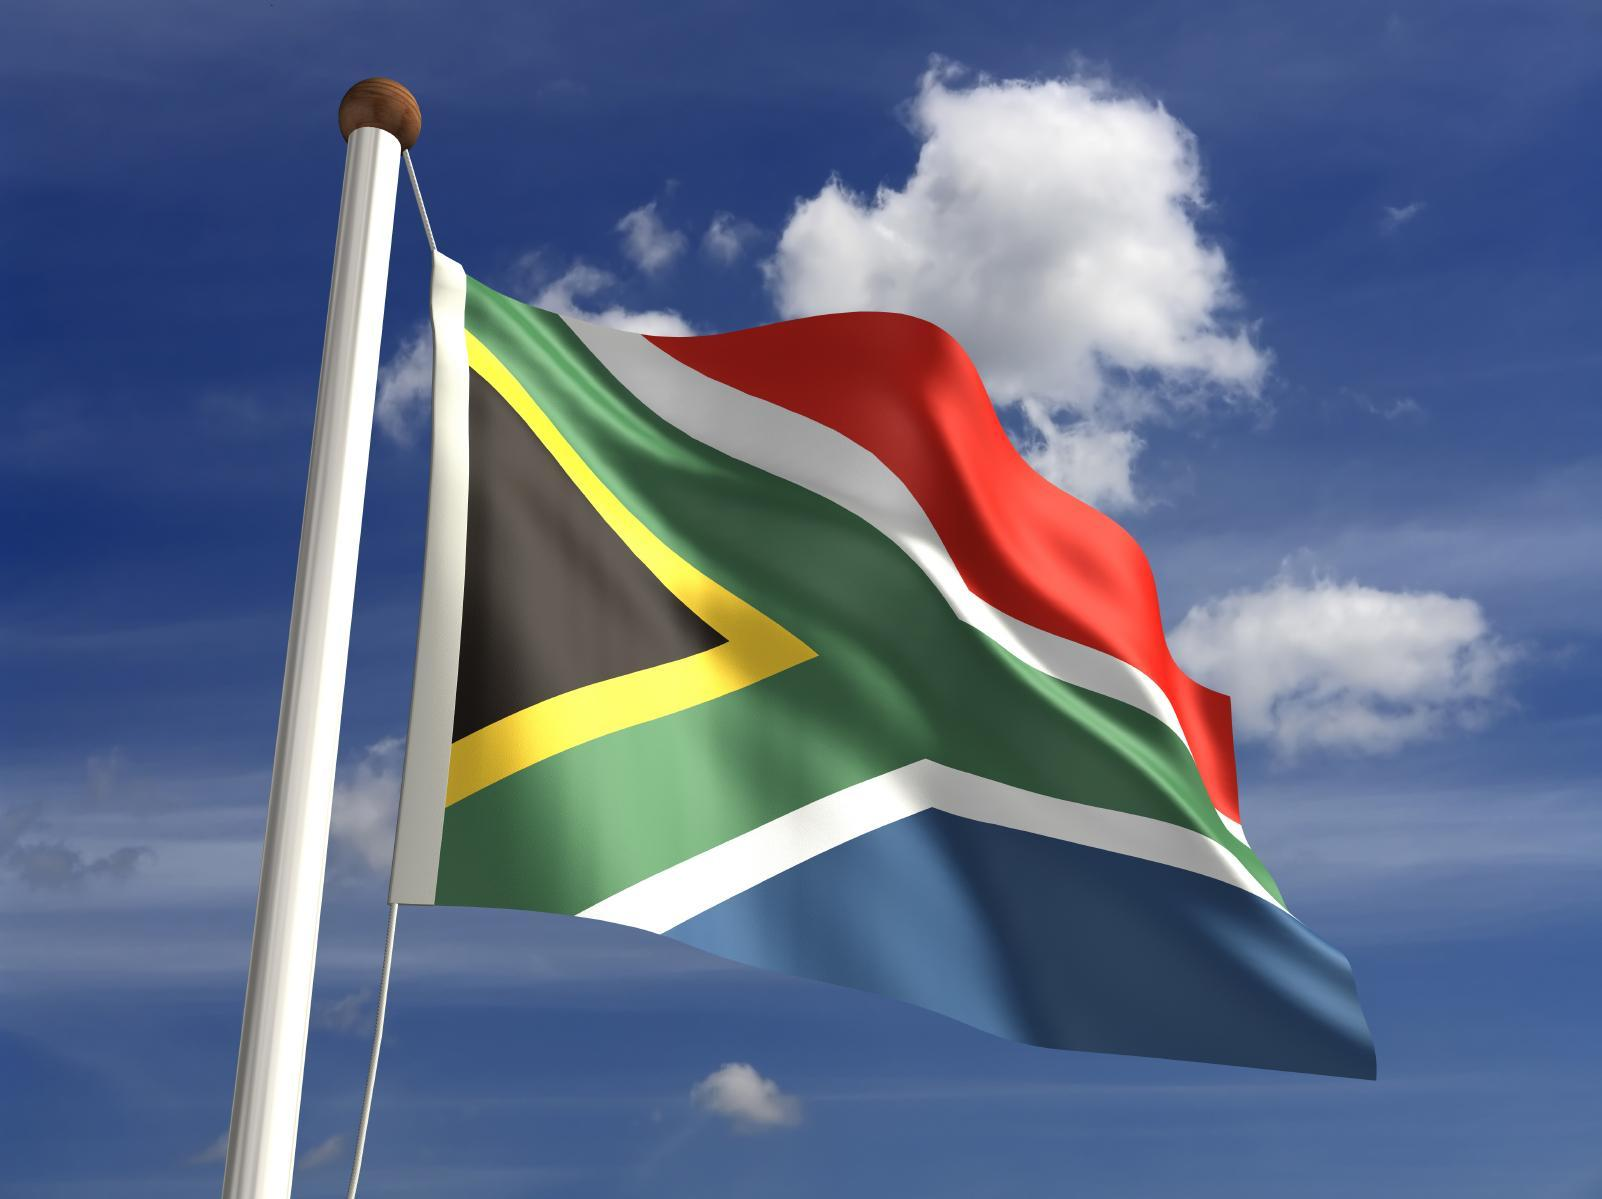 1602x1199 South Africa Flag Wallpapers - National Day Flags for ...